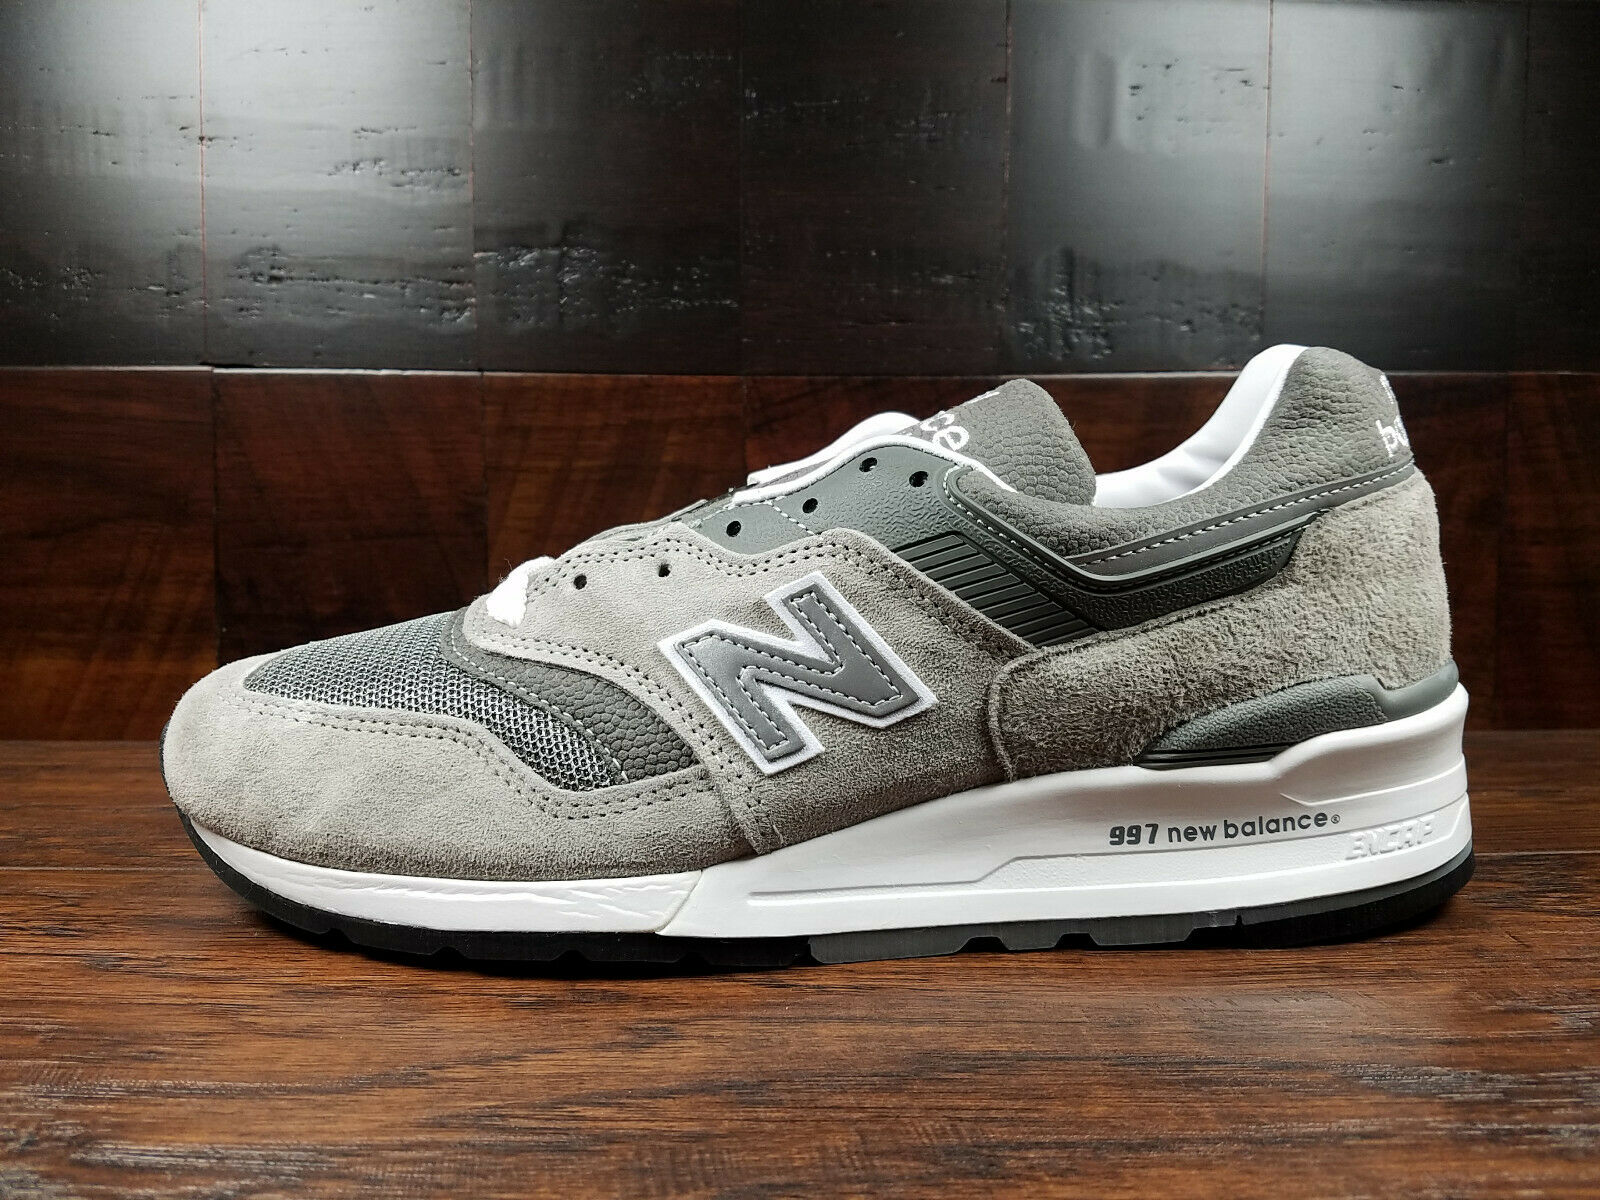 nouveau   M997GY2-Made in USA - 997  REISSUE  Kith (gris) Original Homme Sz 8-13